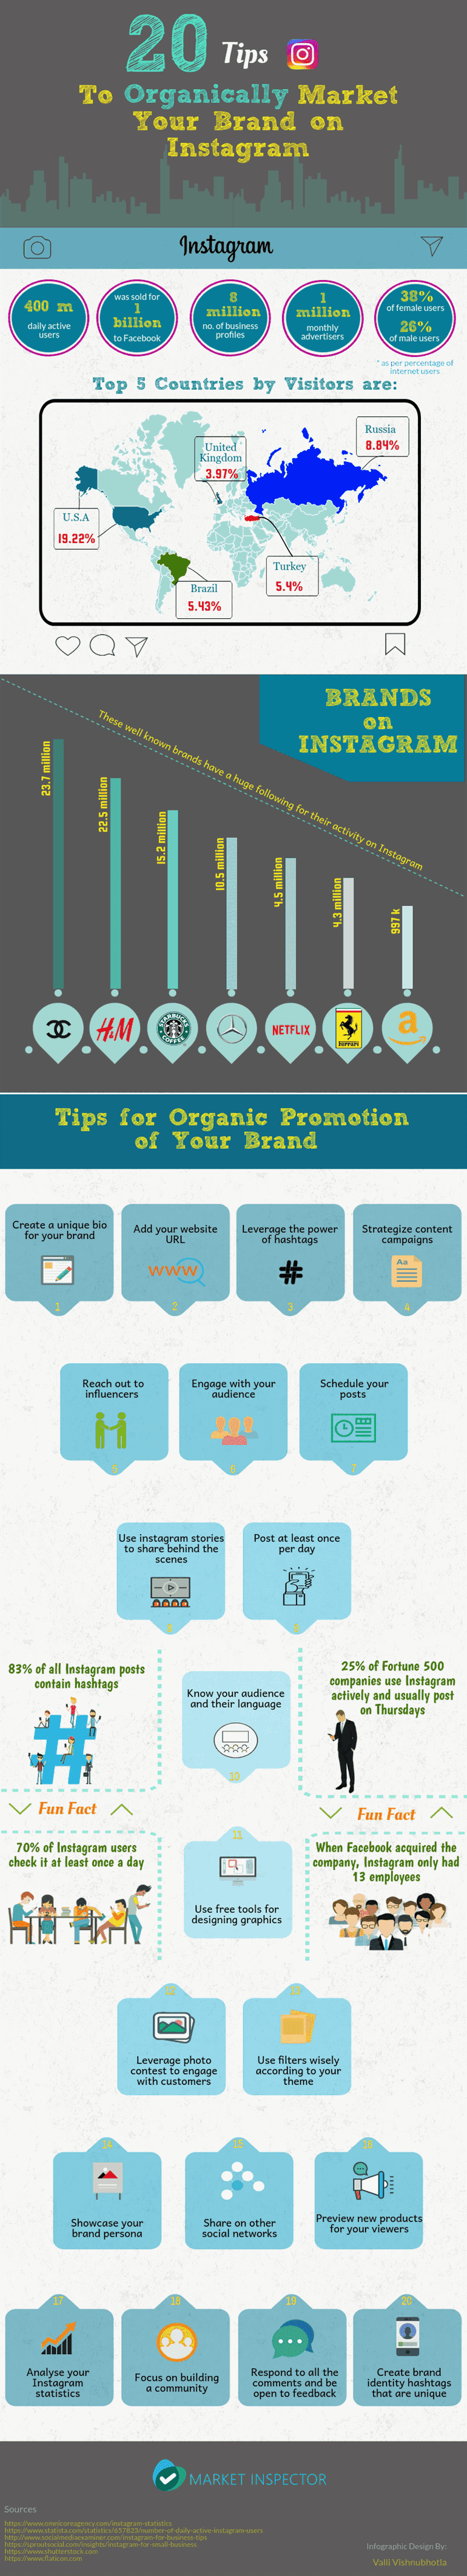 How to Organically Market Your Brand on Instagram #infographic